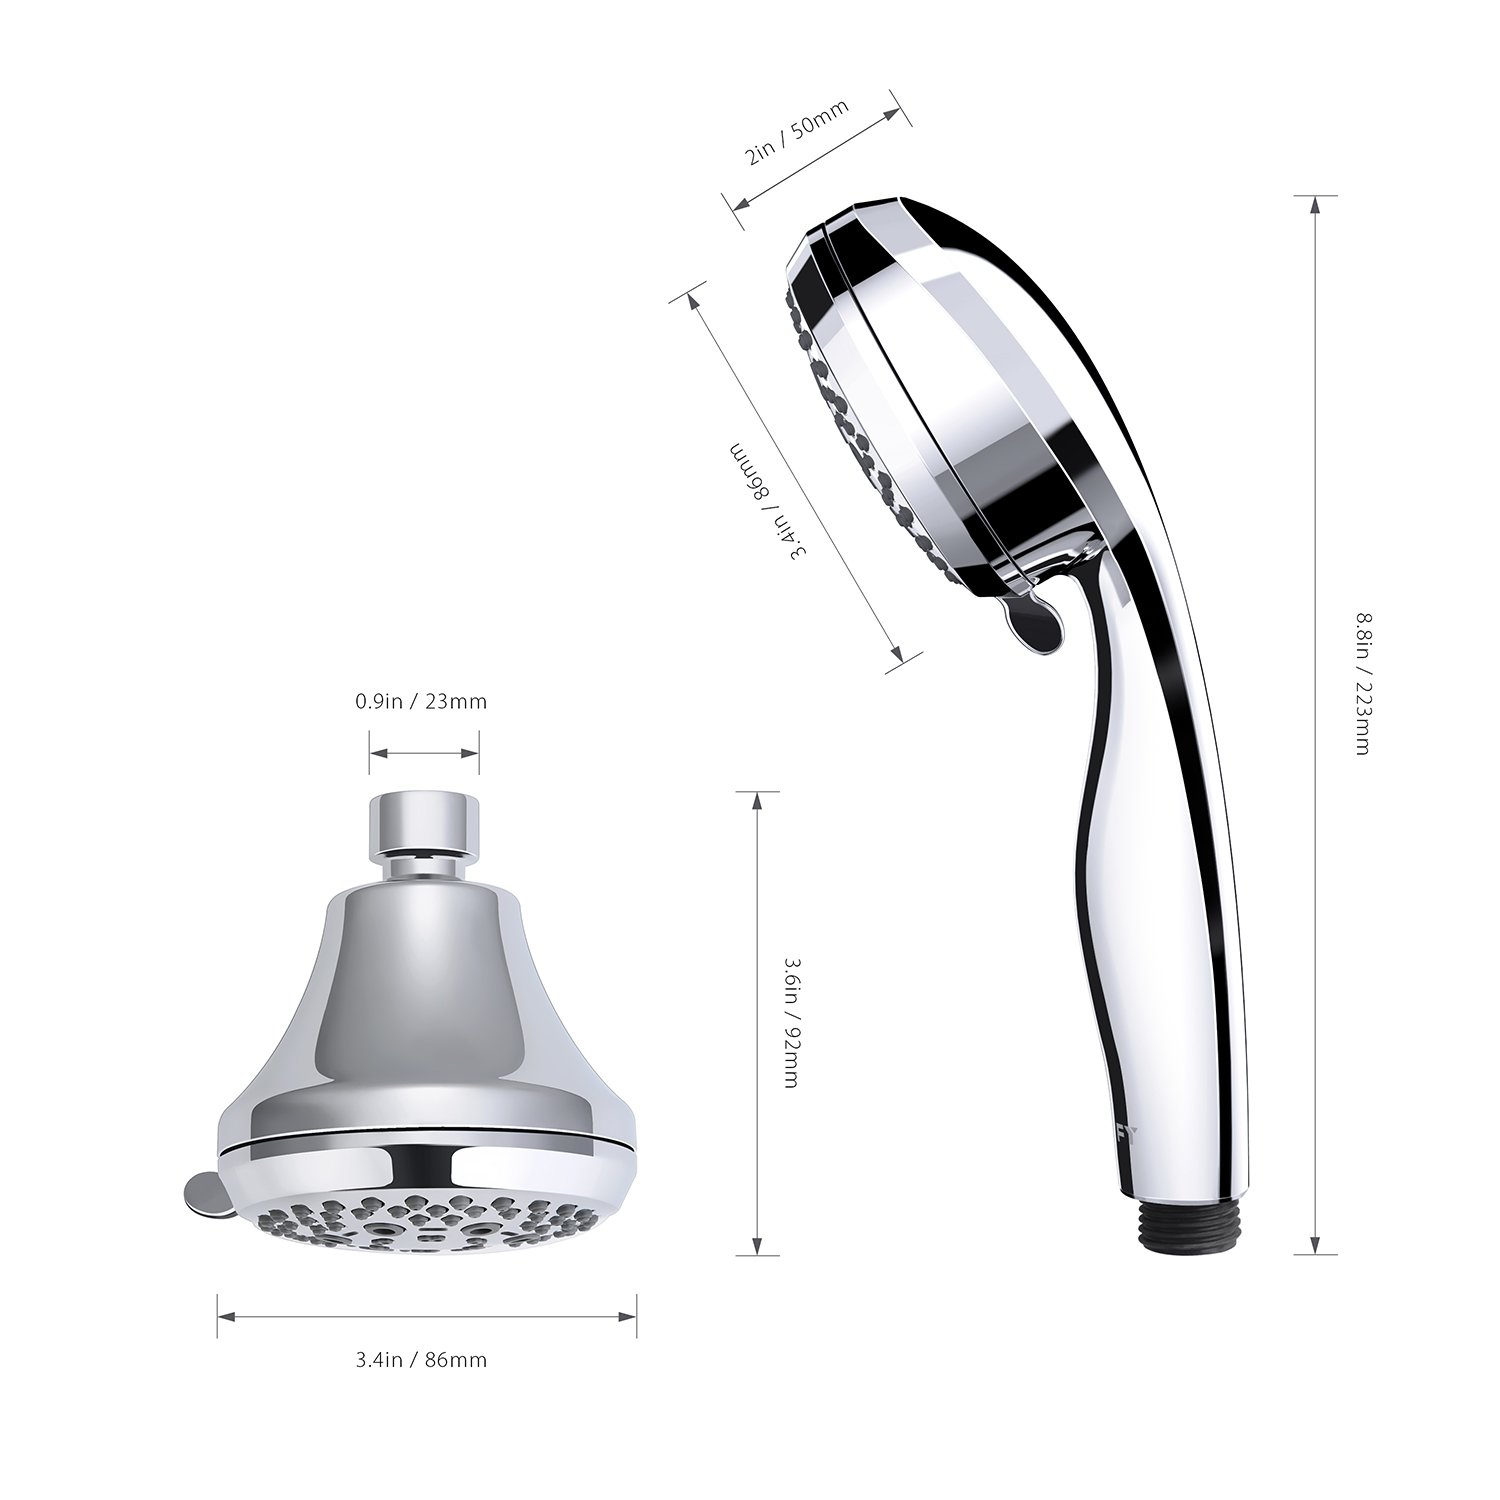 Clofy full-chrome shower head 28-setting handheld shower head and hand shower combo 3-way 2 in 1 shower-head with 5ft flexiable stainless hose